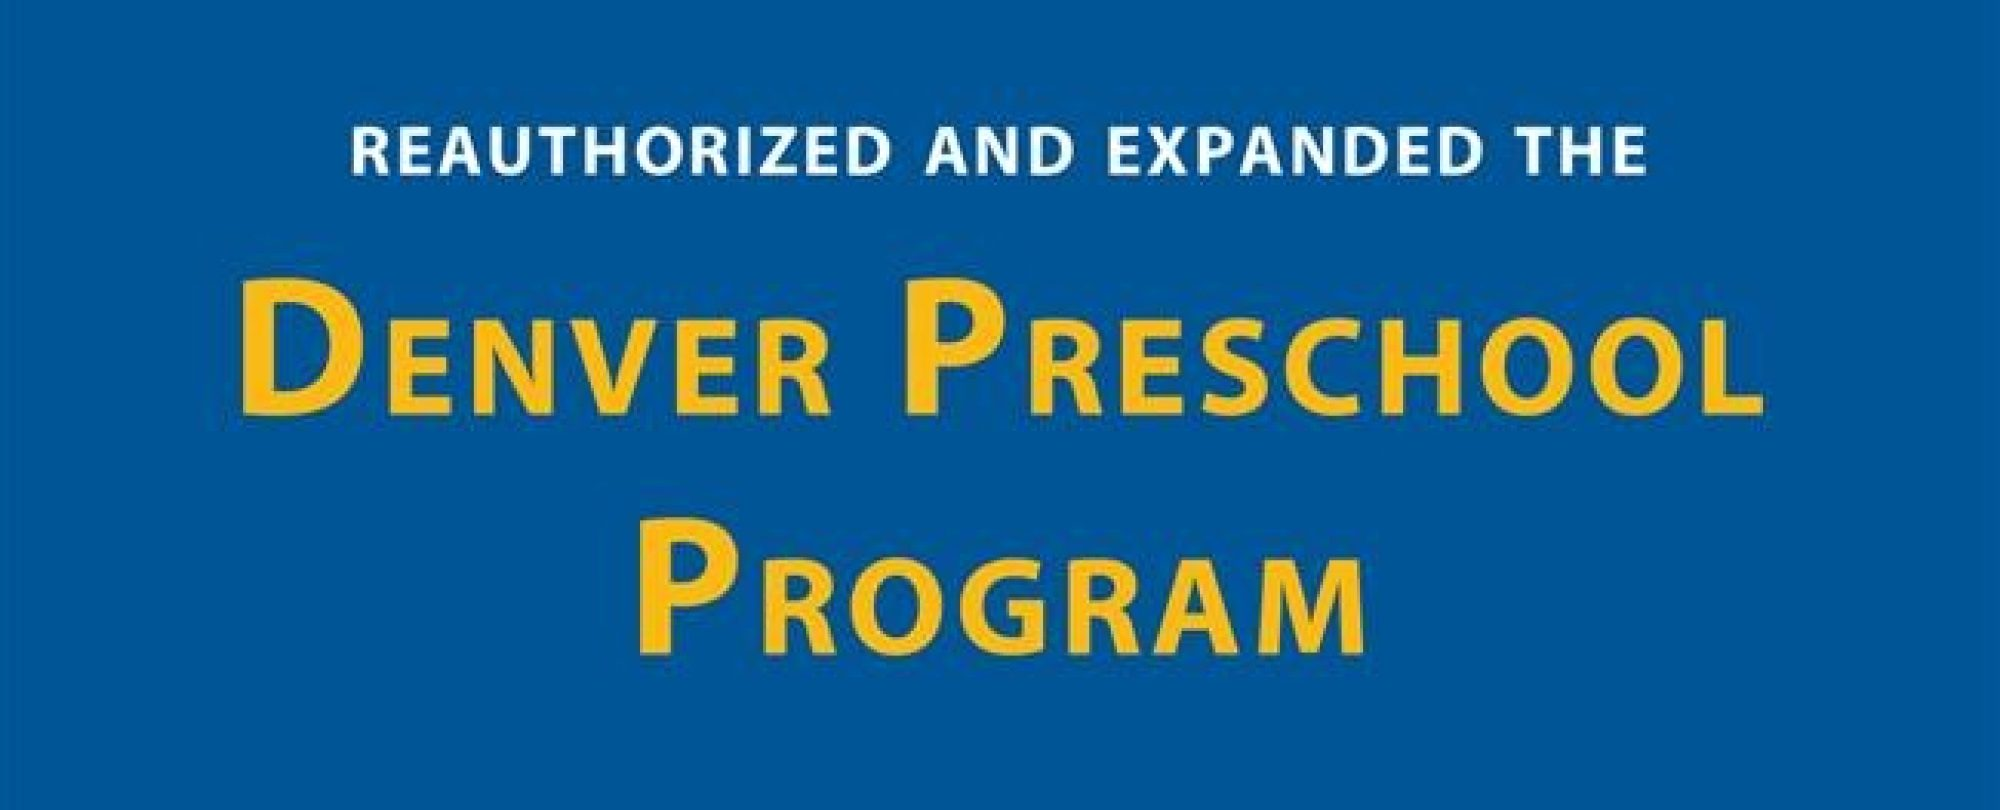 Reauthorized and expanded Denver preschool program